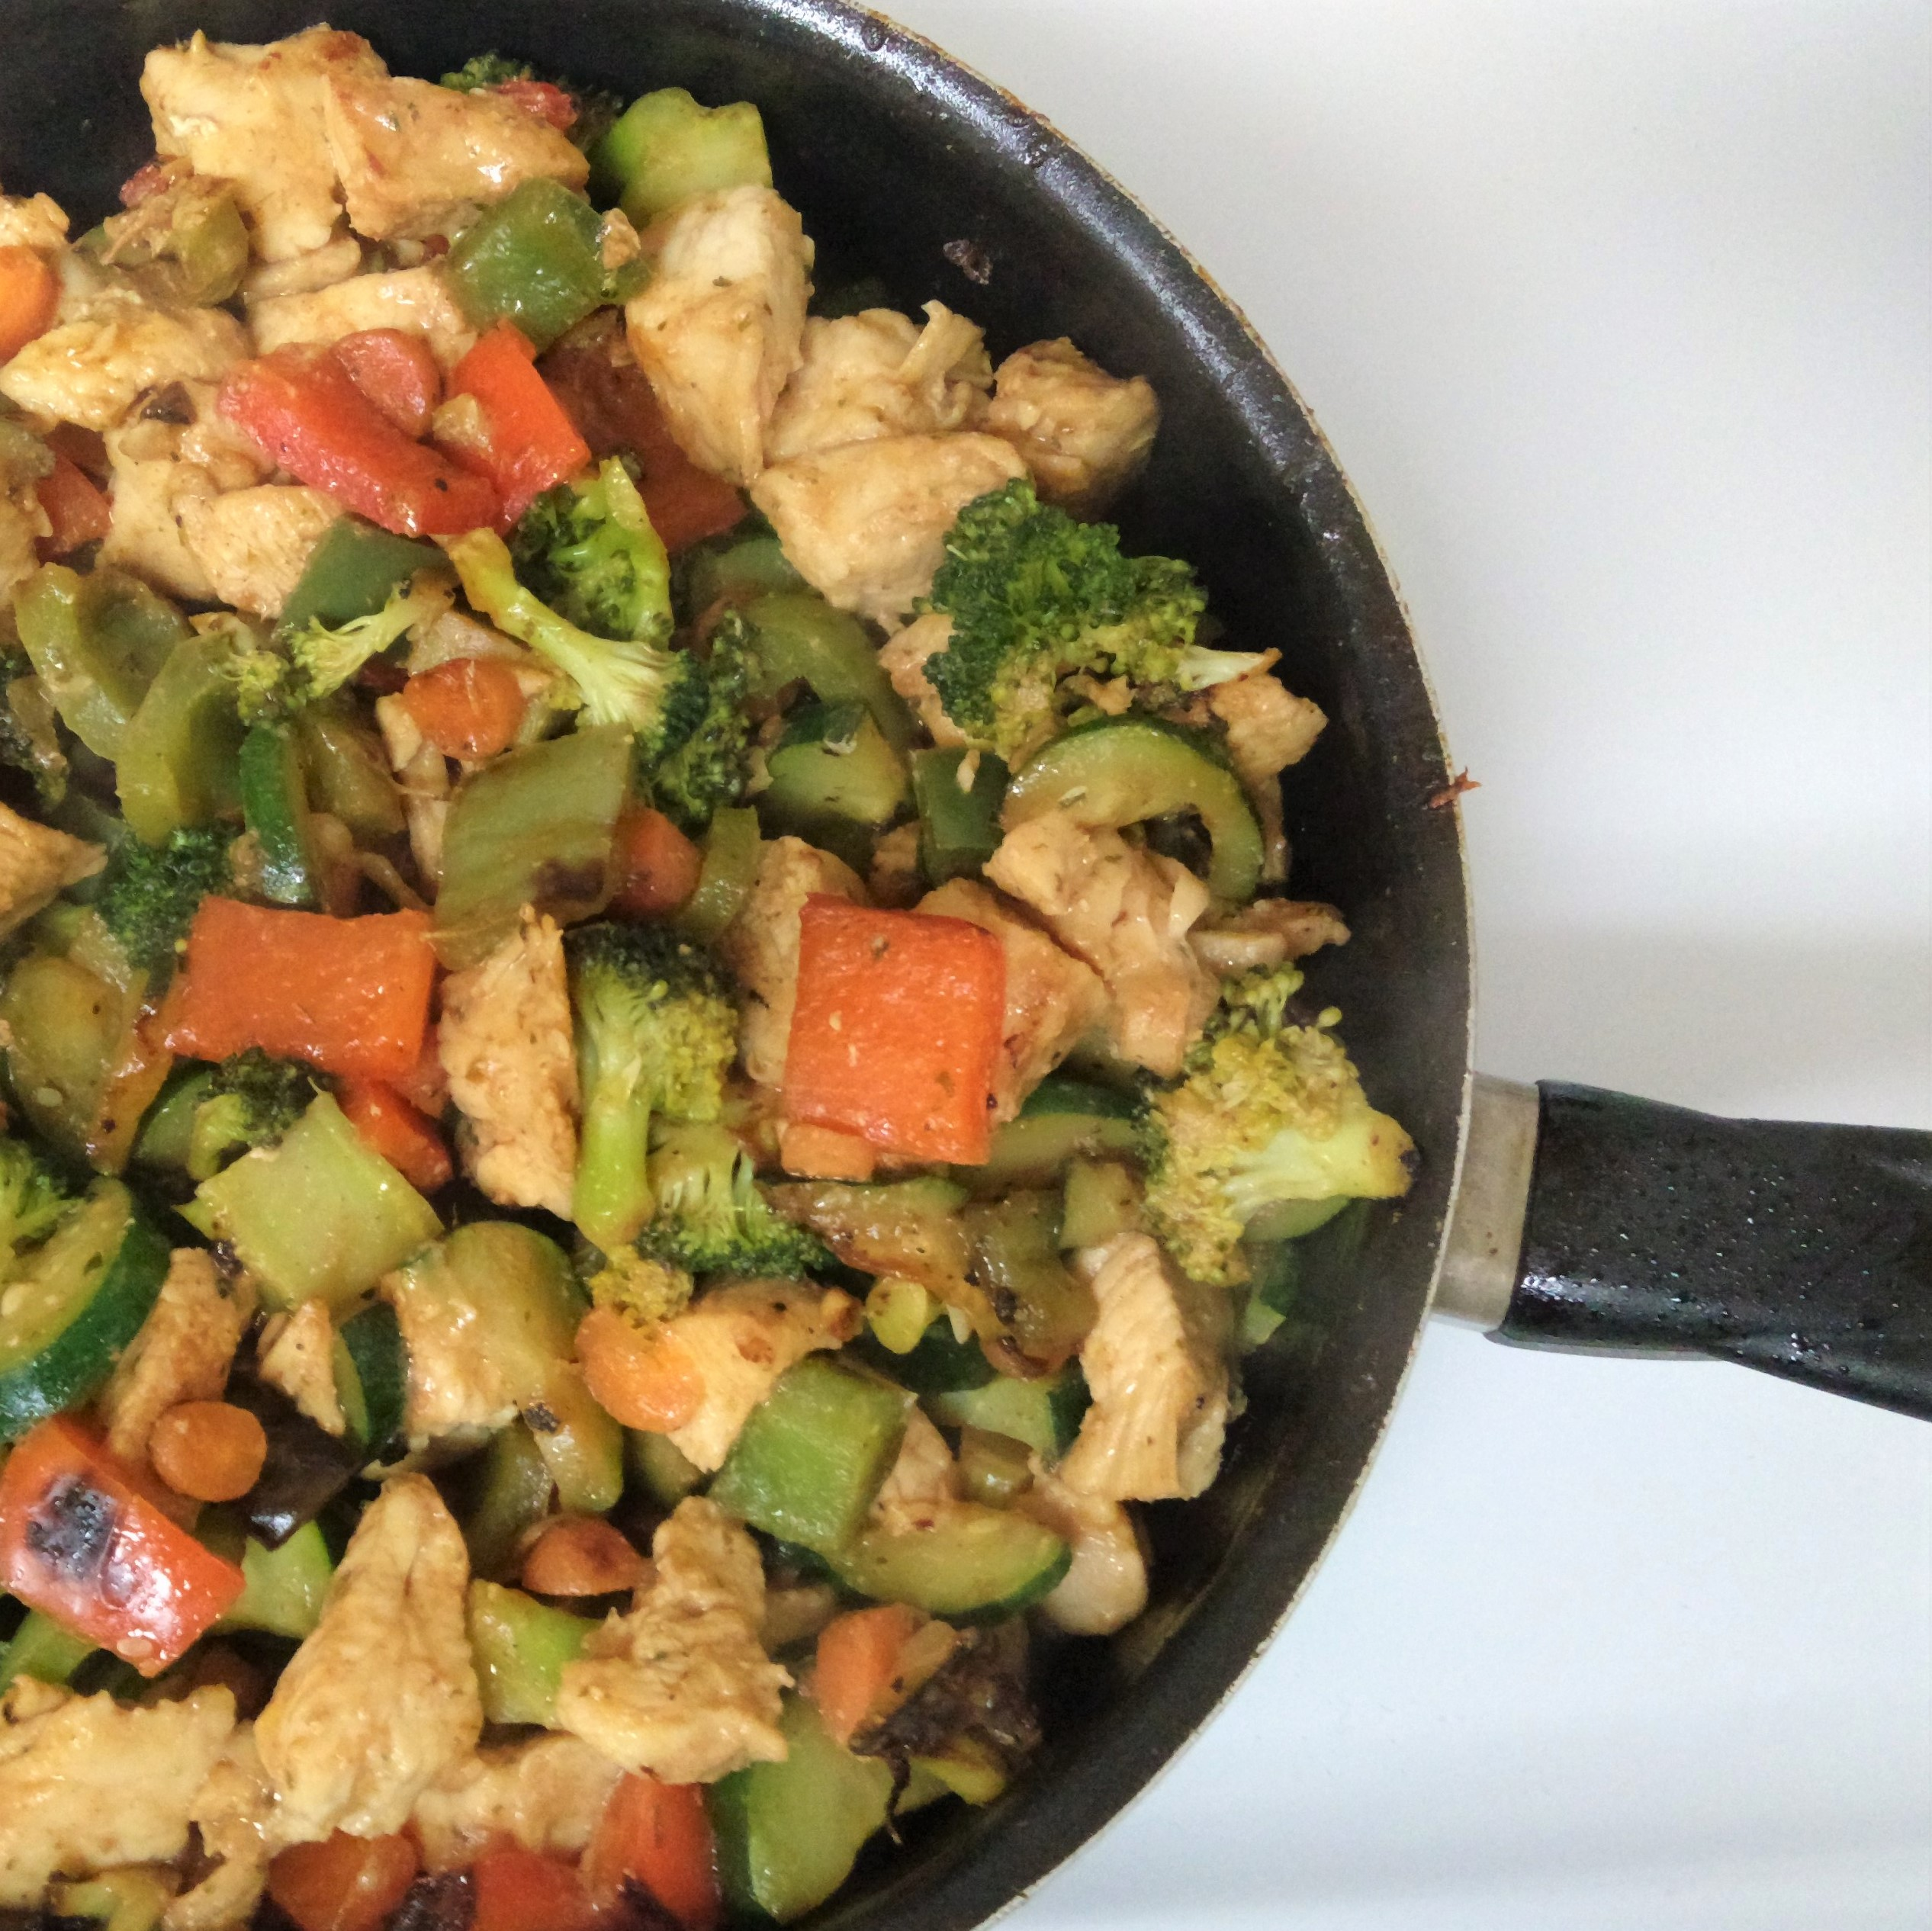 Killer Recipes: Skillet Chicken and Veggies